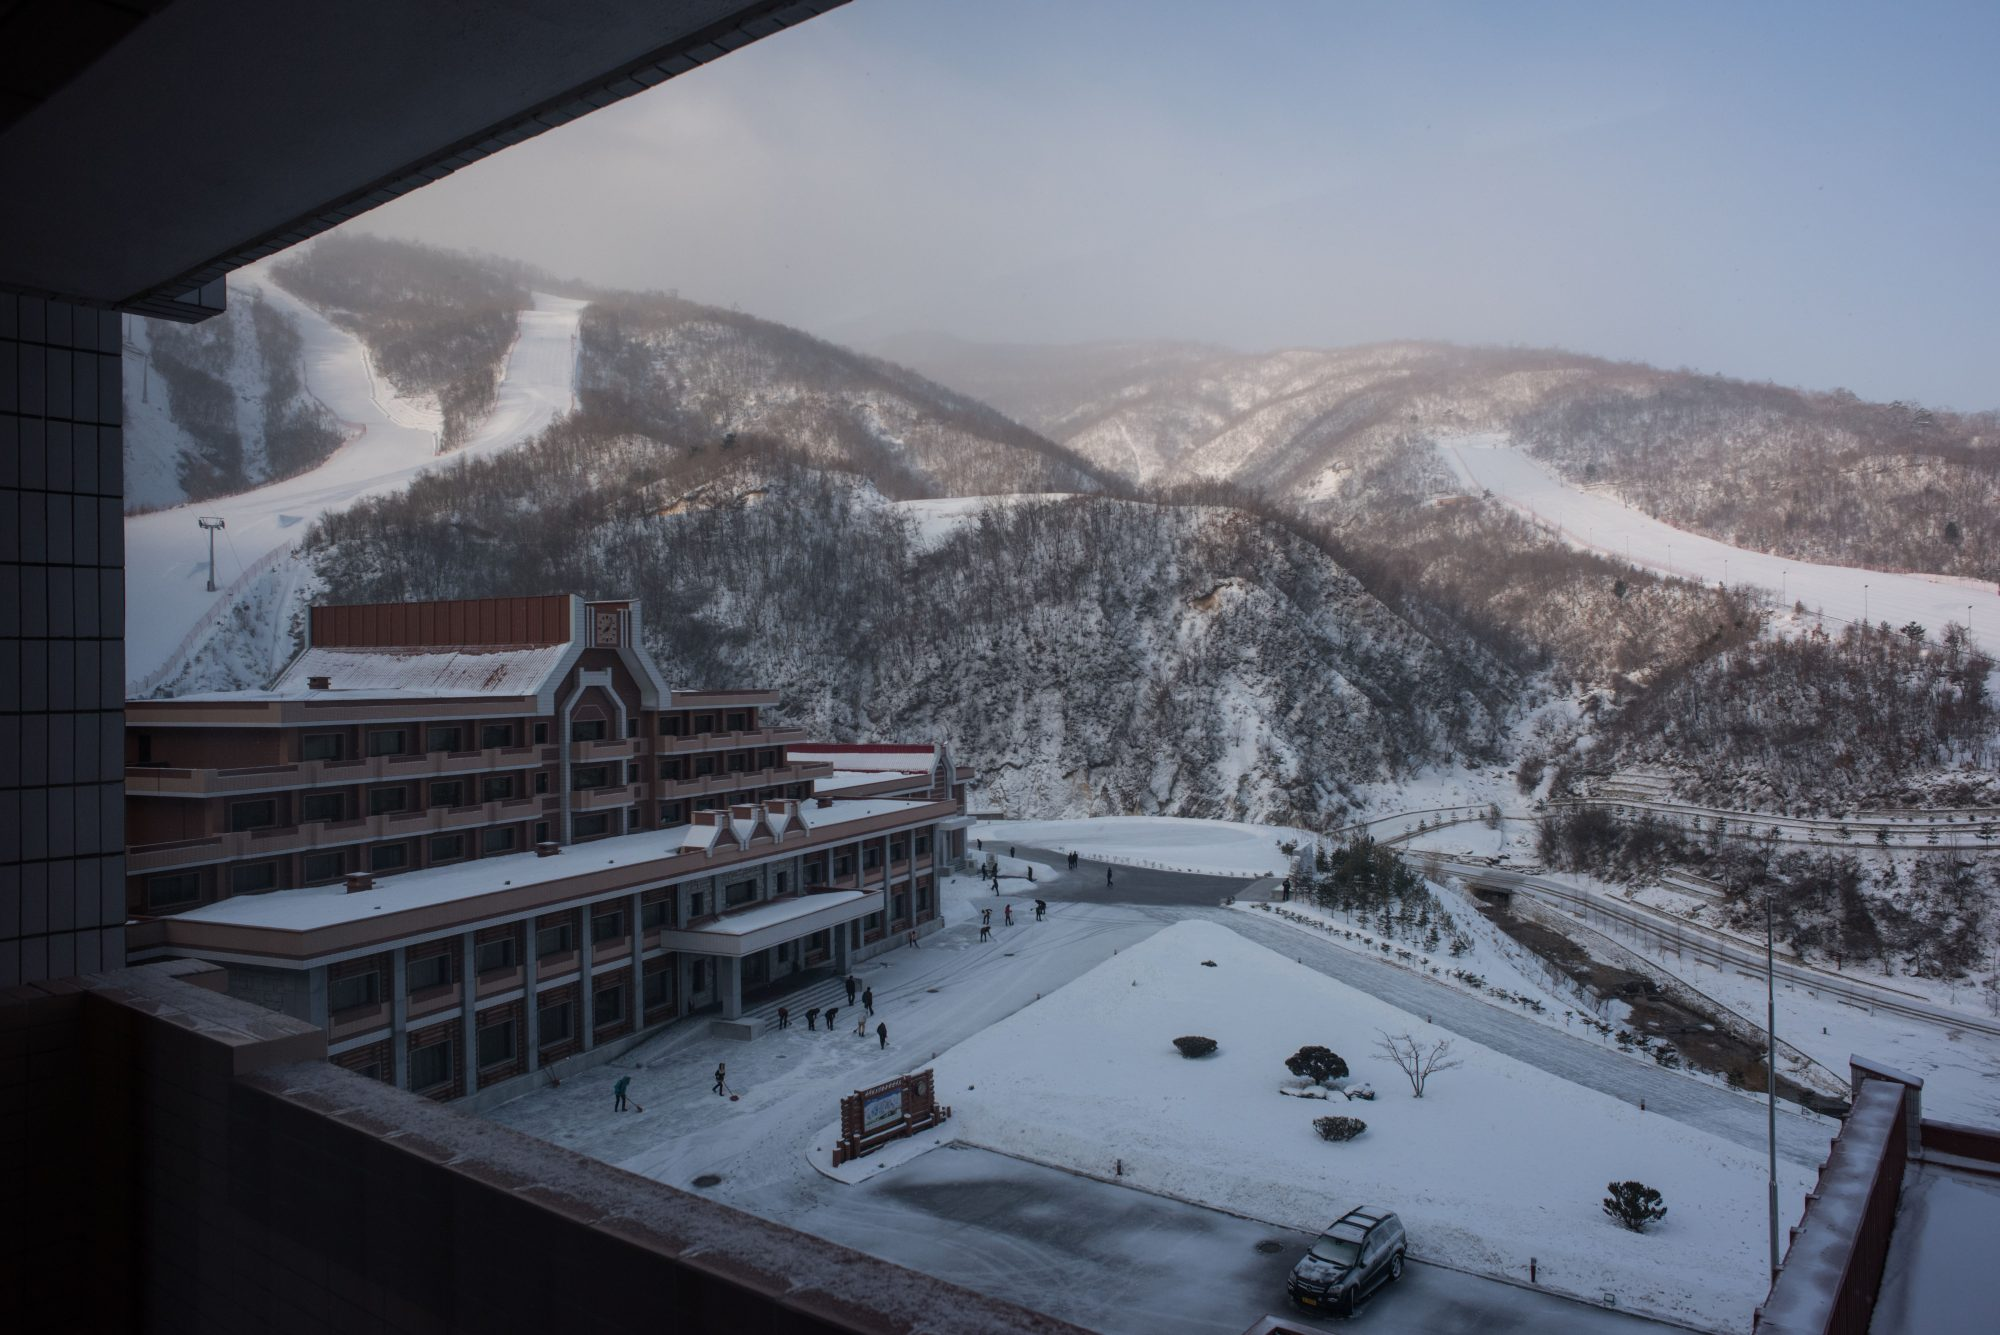 Here's What a Luxury Ski Resort Owned by North Korean Leader Kim Jong Un Looks Like